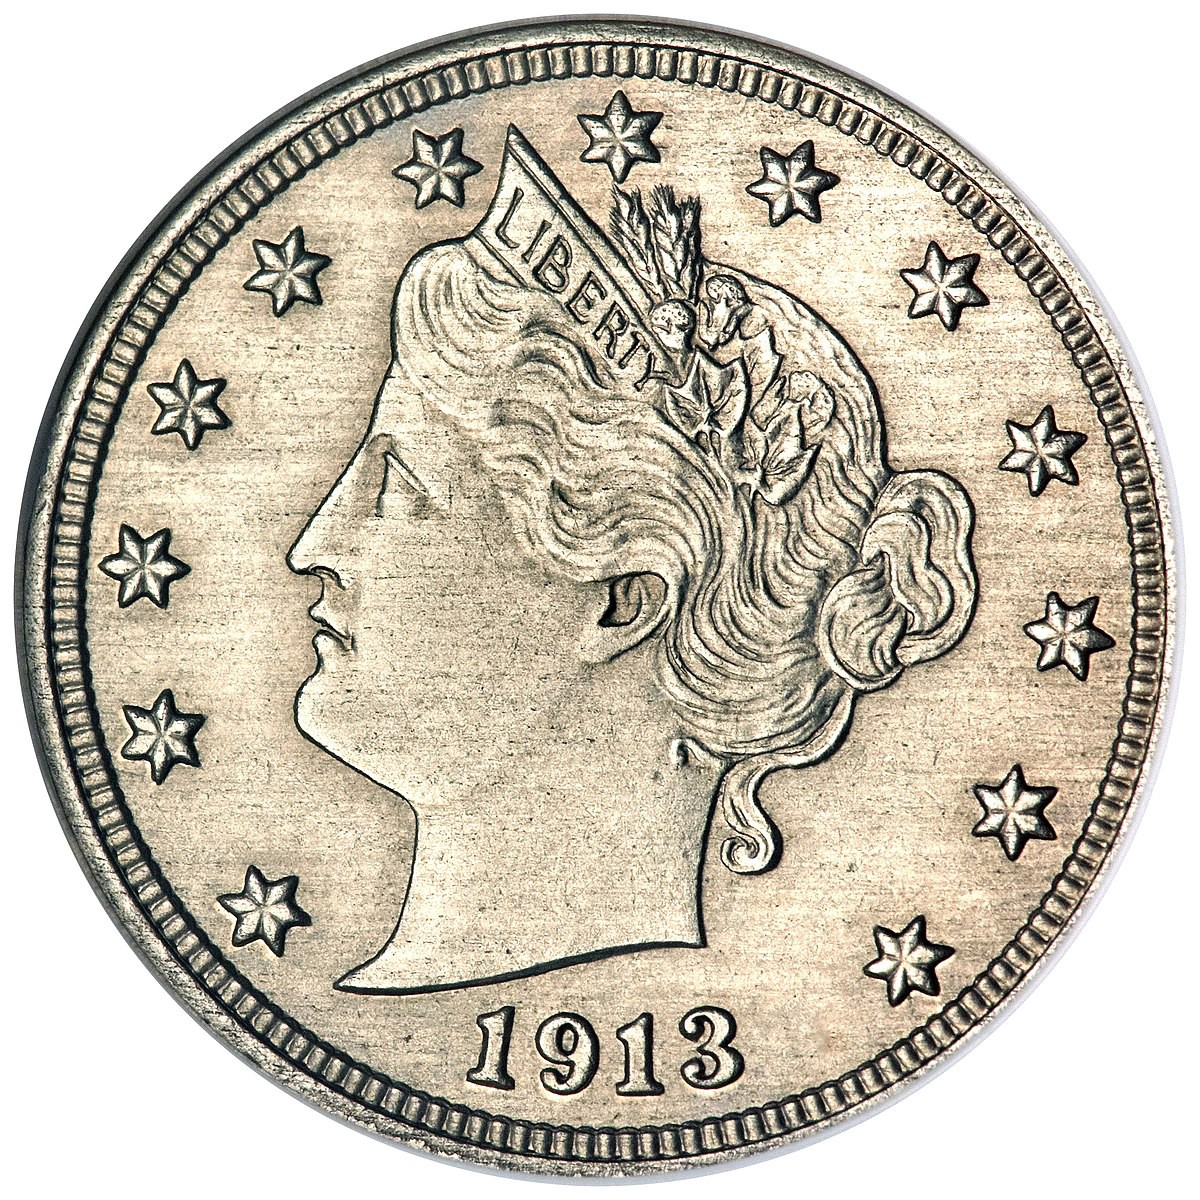 The History Of The 1913 Liberty Head Nickel Traveling Through